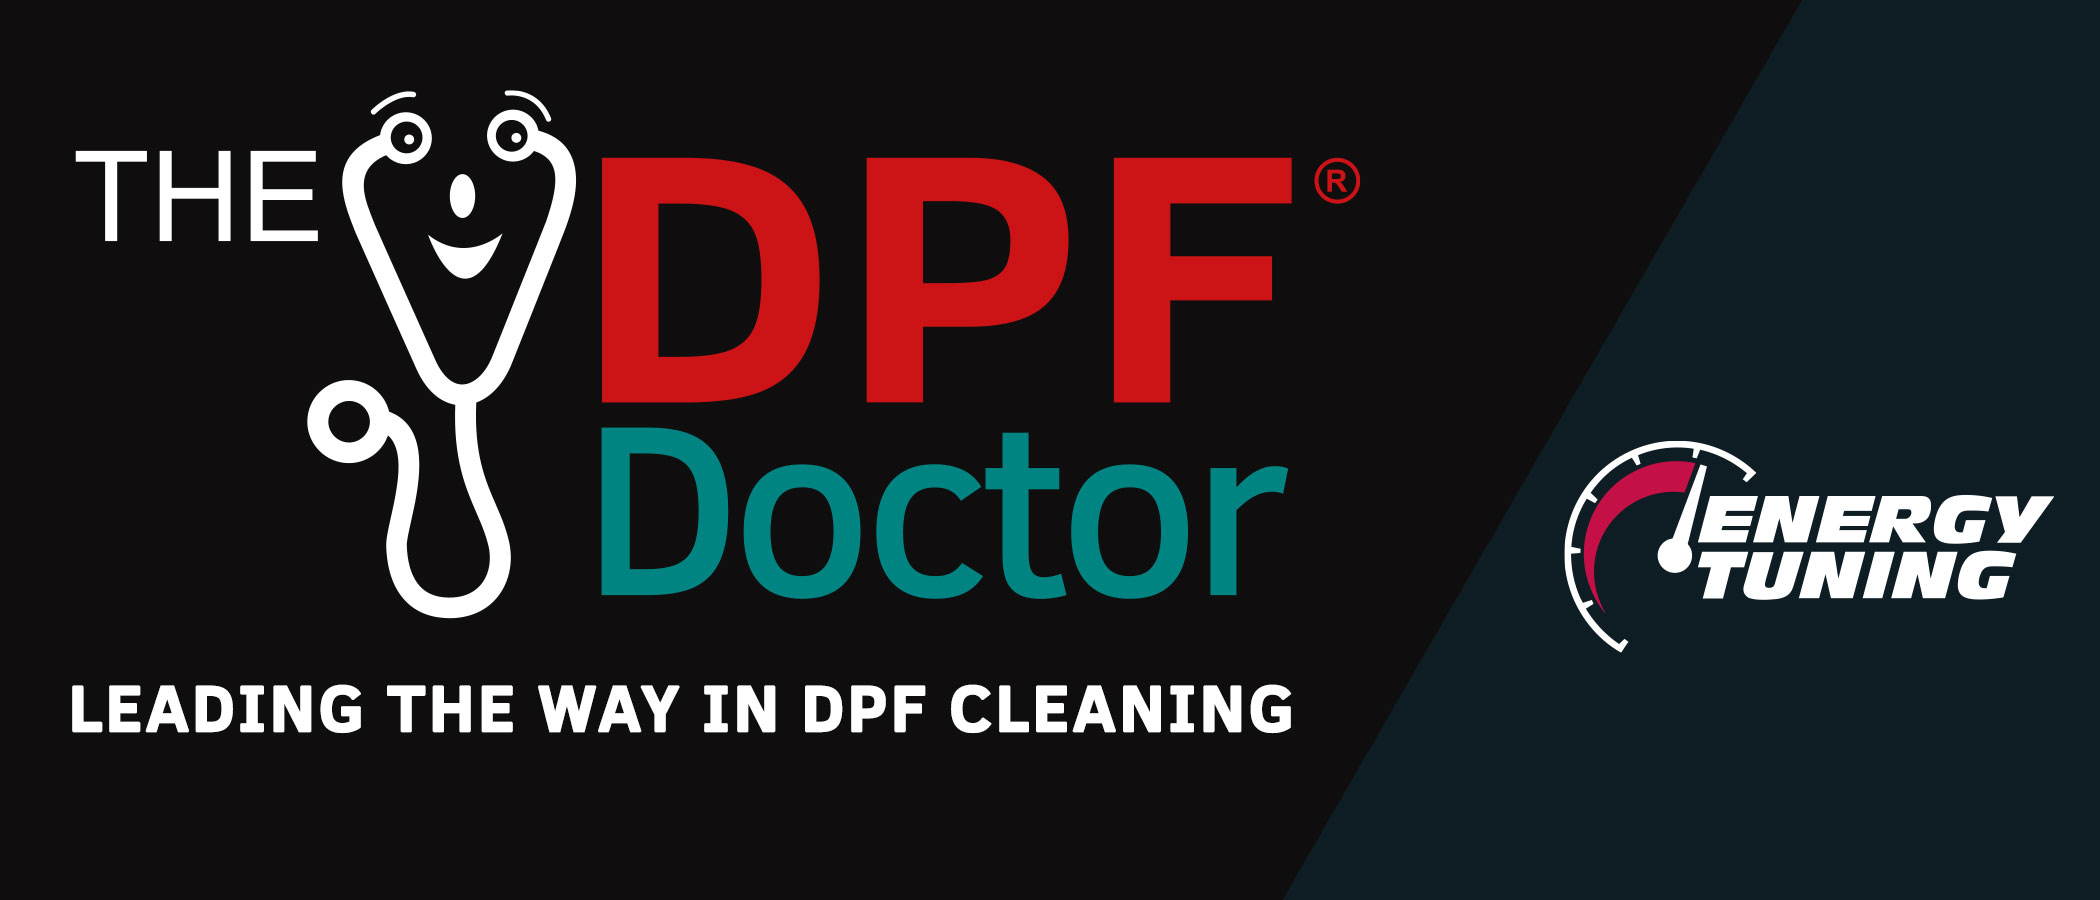 The DPF Doctor Network